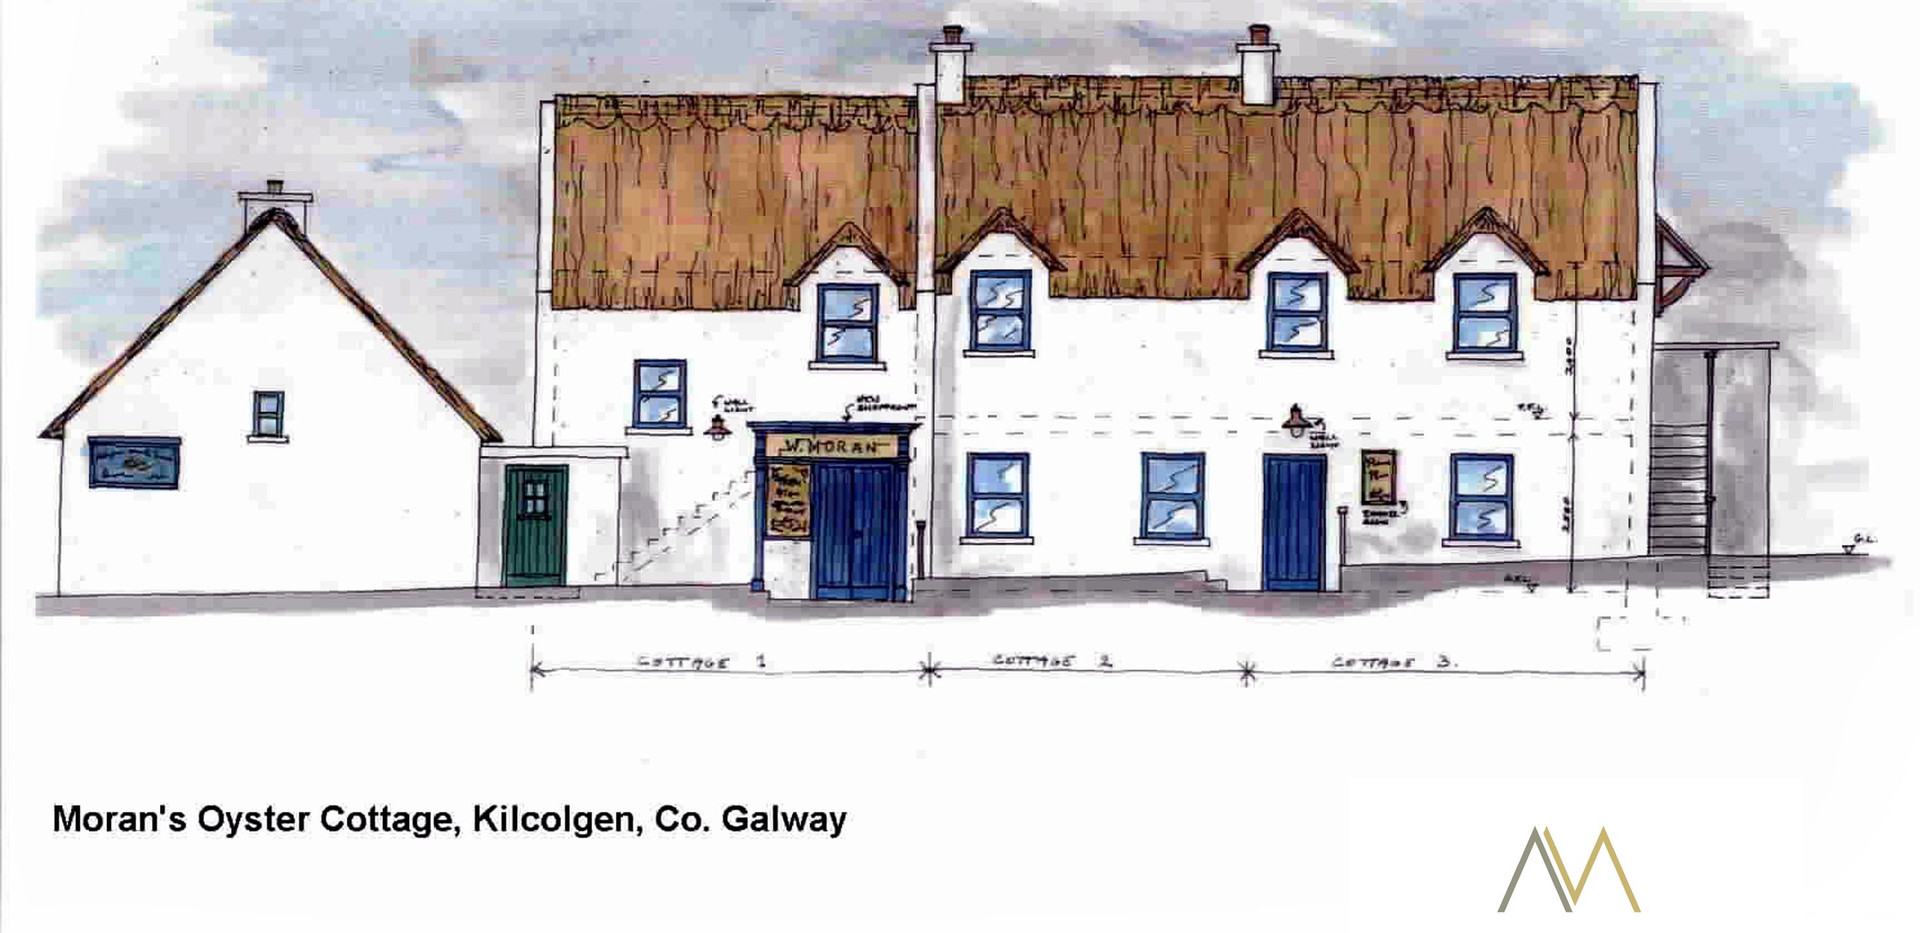 Moran's Oyster Cottage, Moran's of the Weir, Kilcolgan, Co. Galway